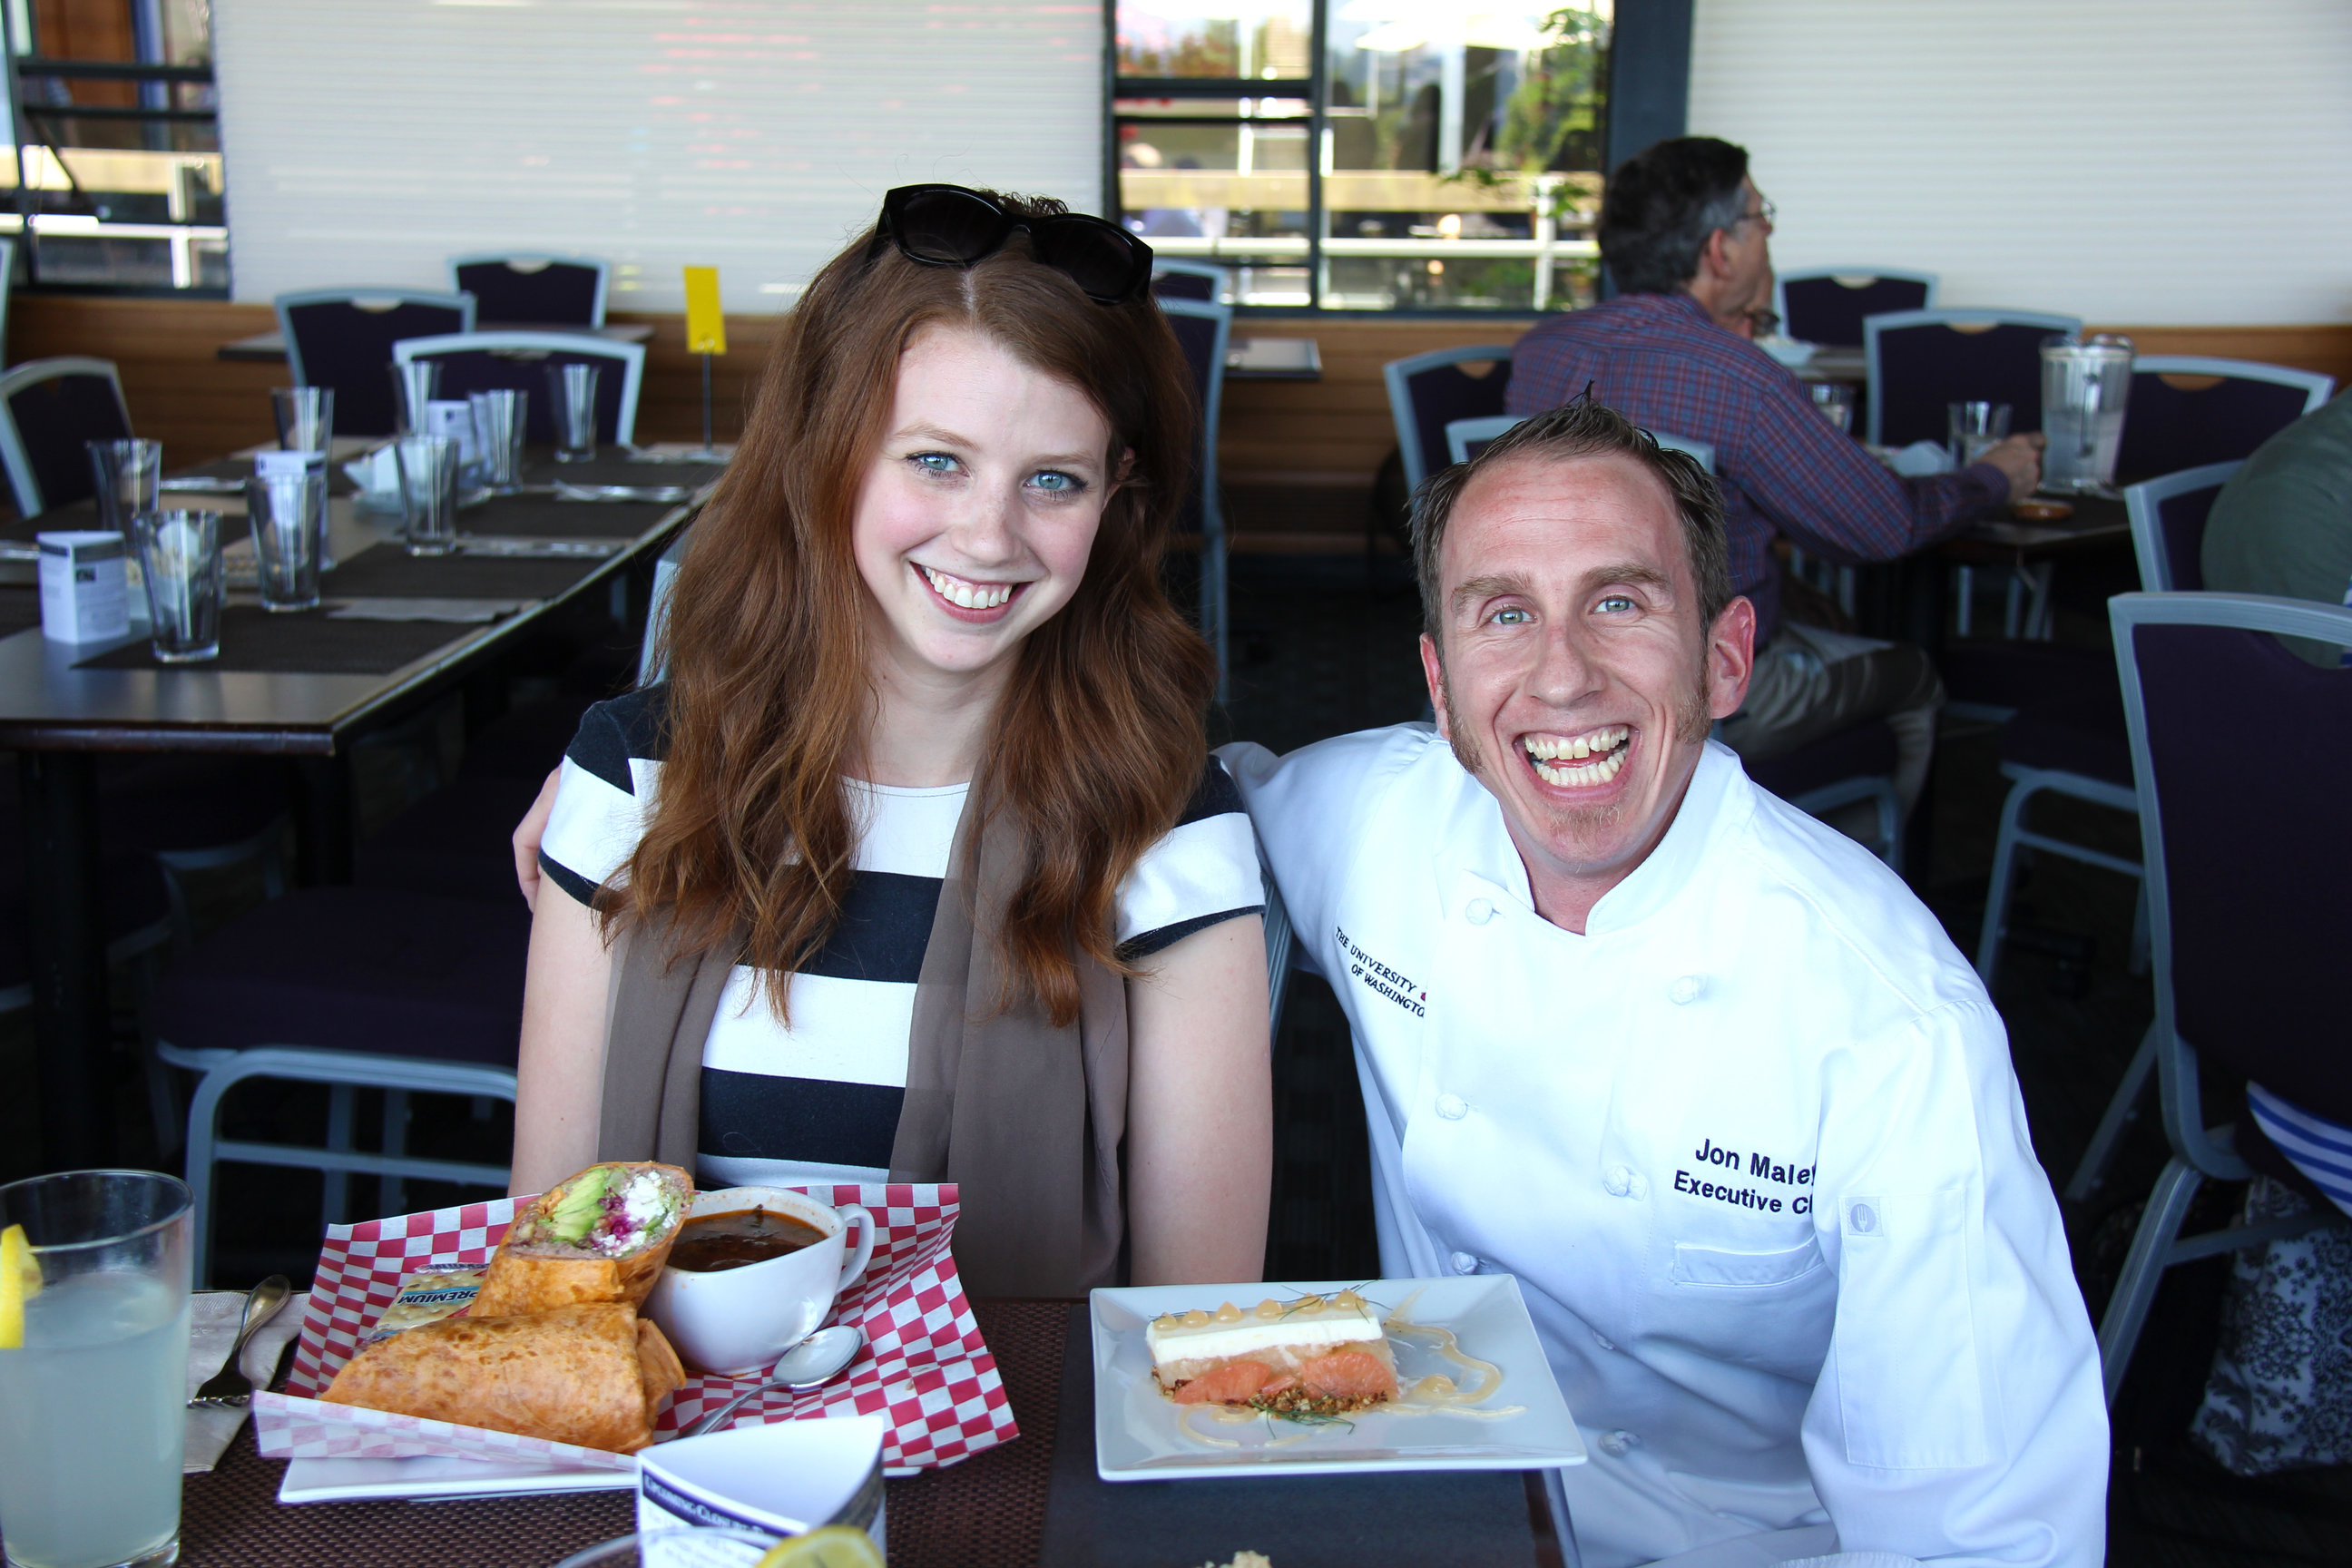 rsz_felicity_brigham_and_executive_chef_jon_maley